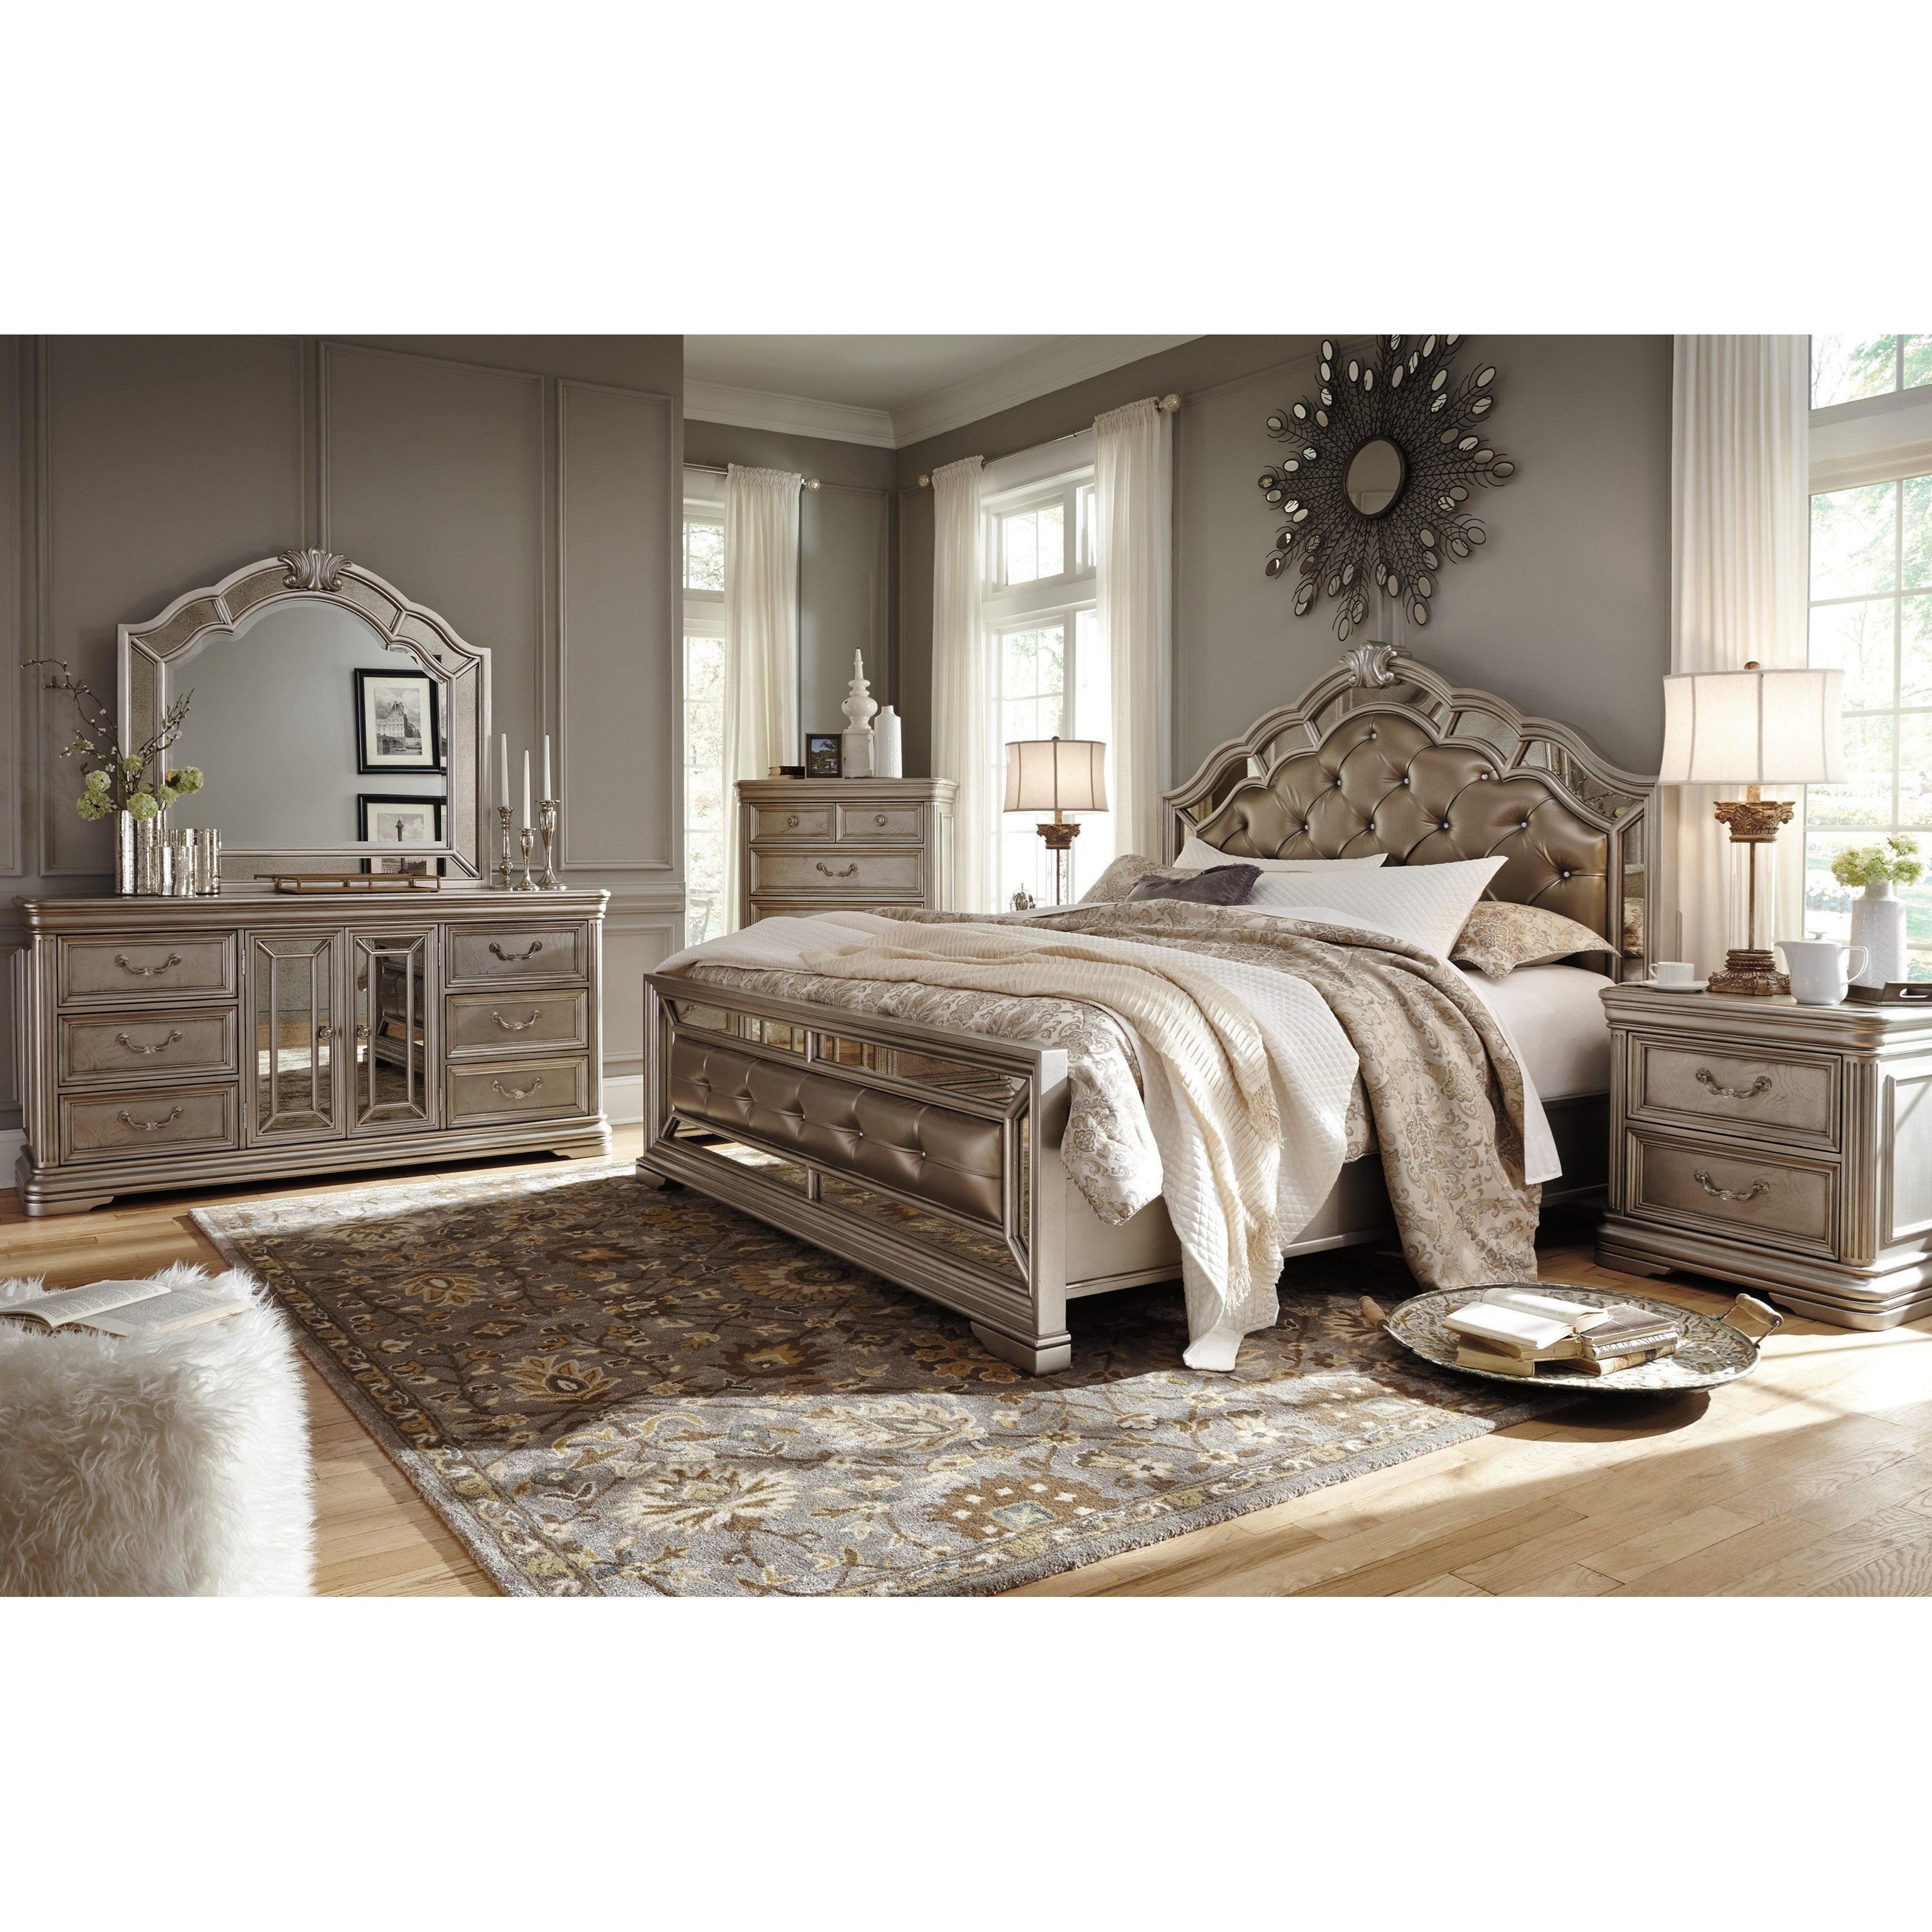 Ashley City Furniture: Signature Design By Ashley Birlanny Five Drawer Chest In